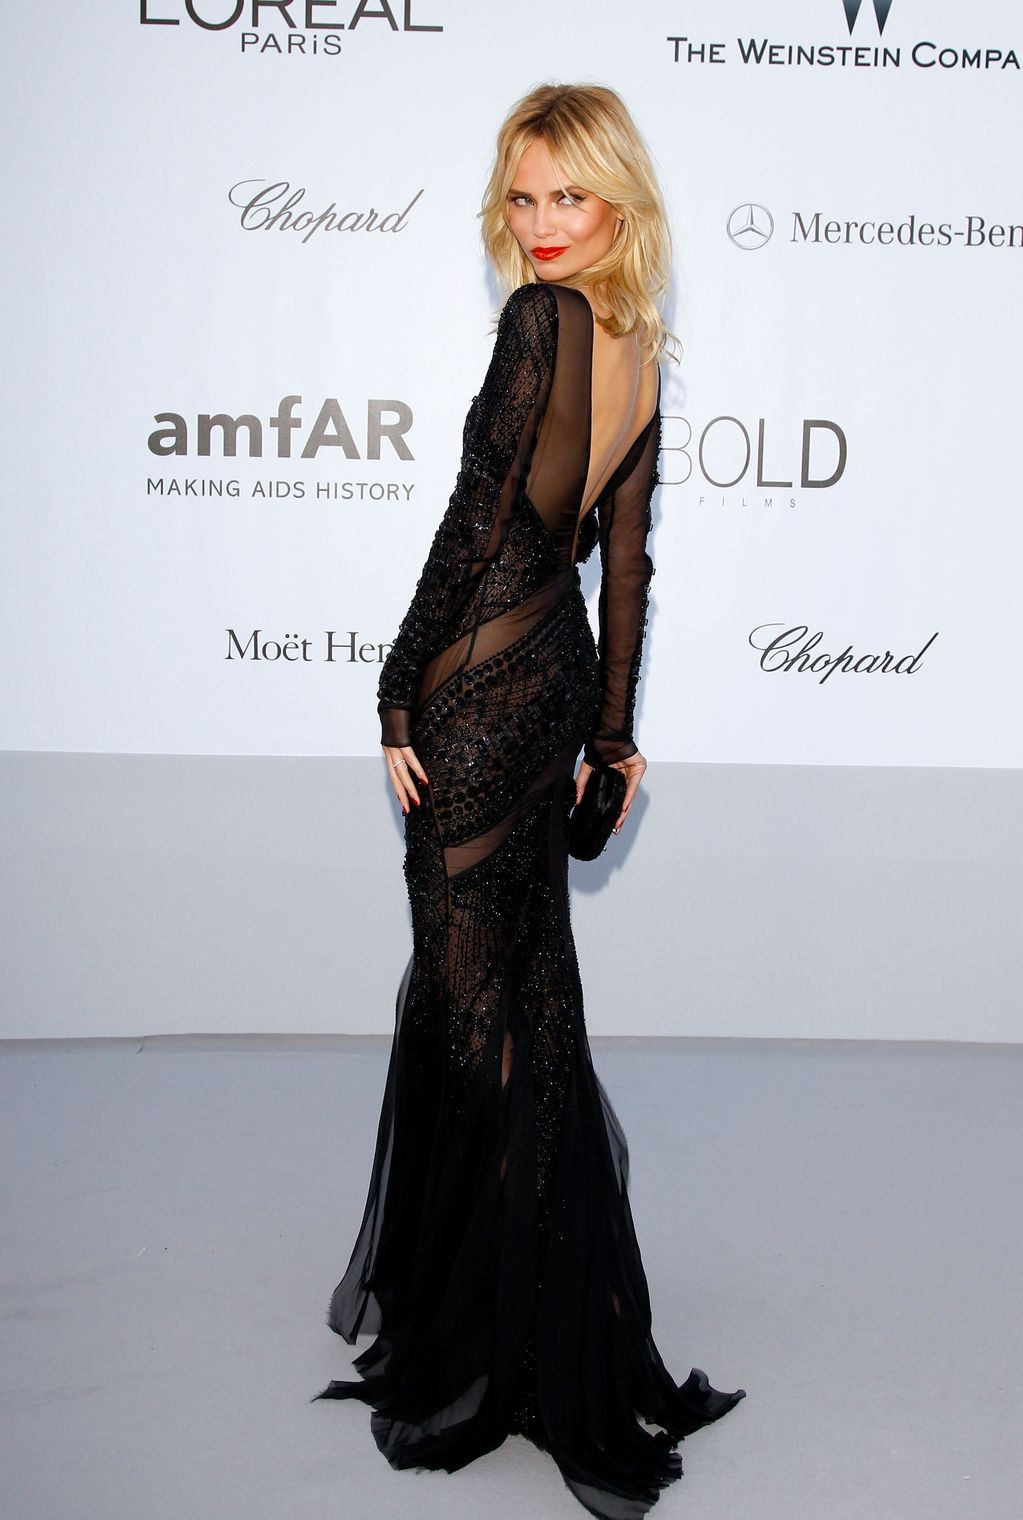 Natasha Poly looking STUNNING in an Emilio Pucci dress at the AMFAR Gala in Cannes